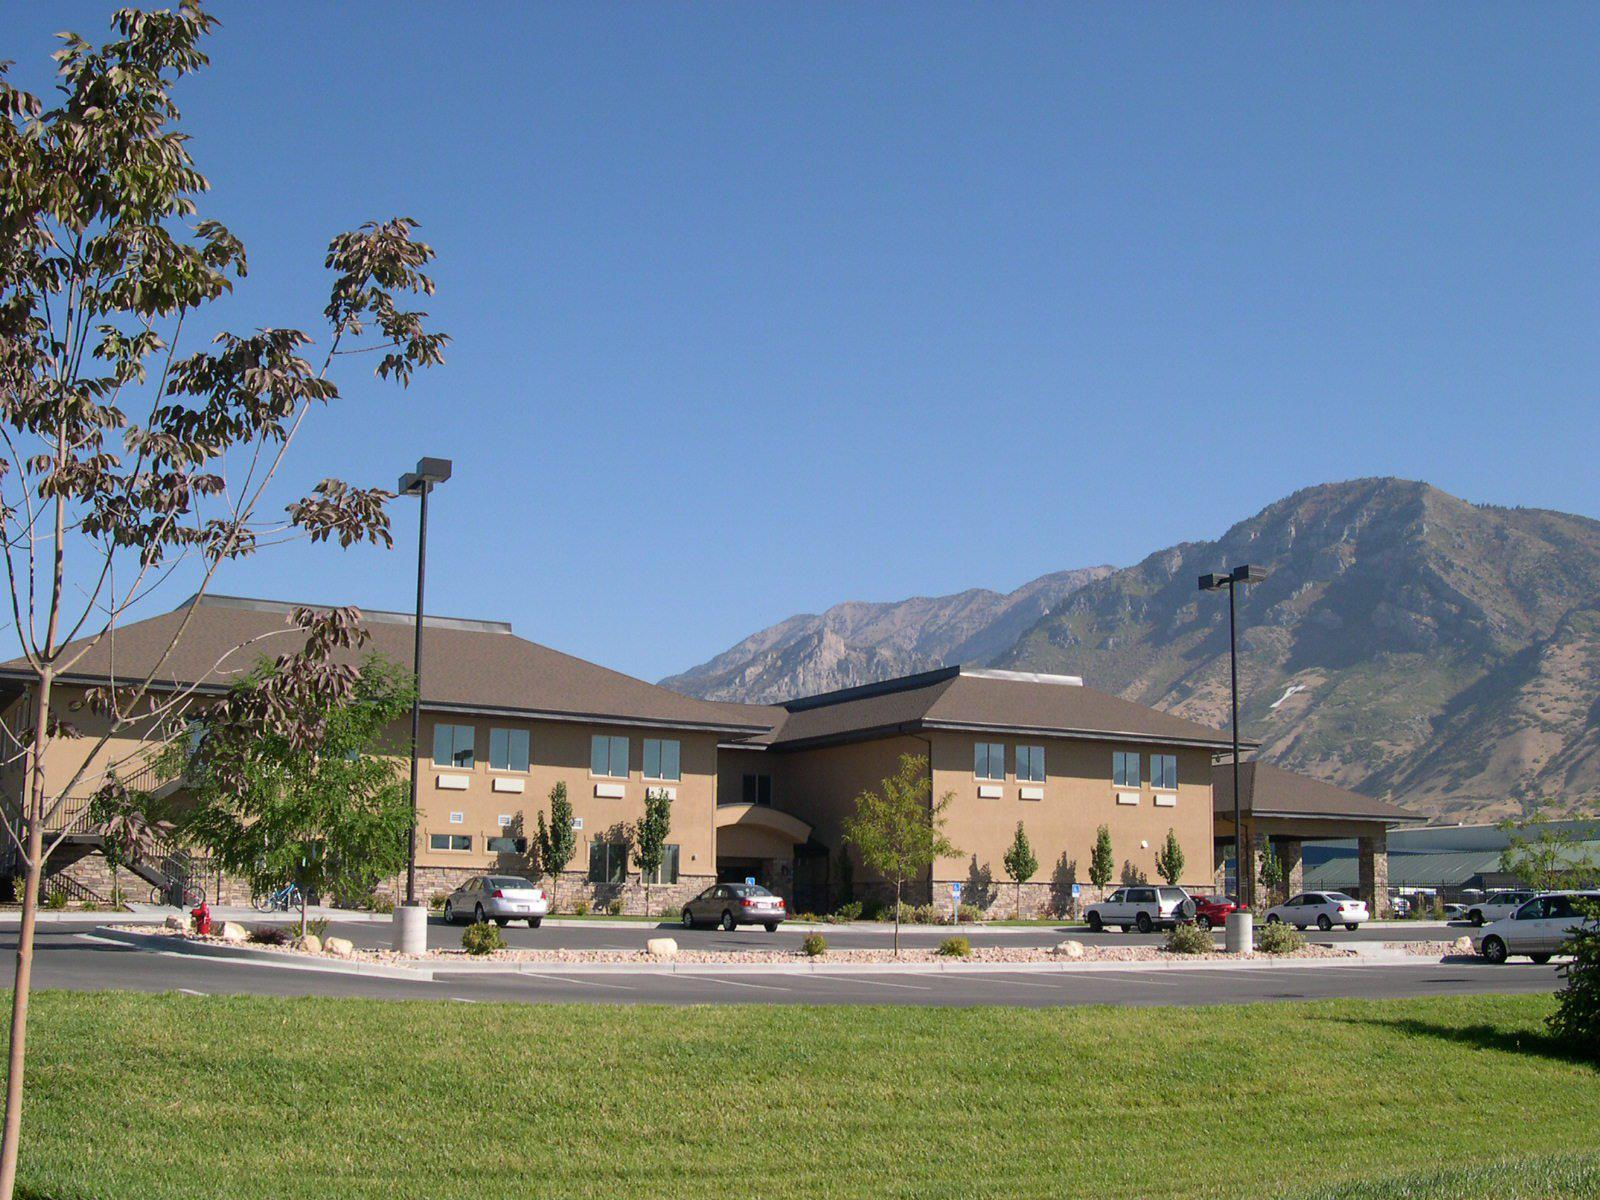 Food and Care Coalition Provo